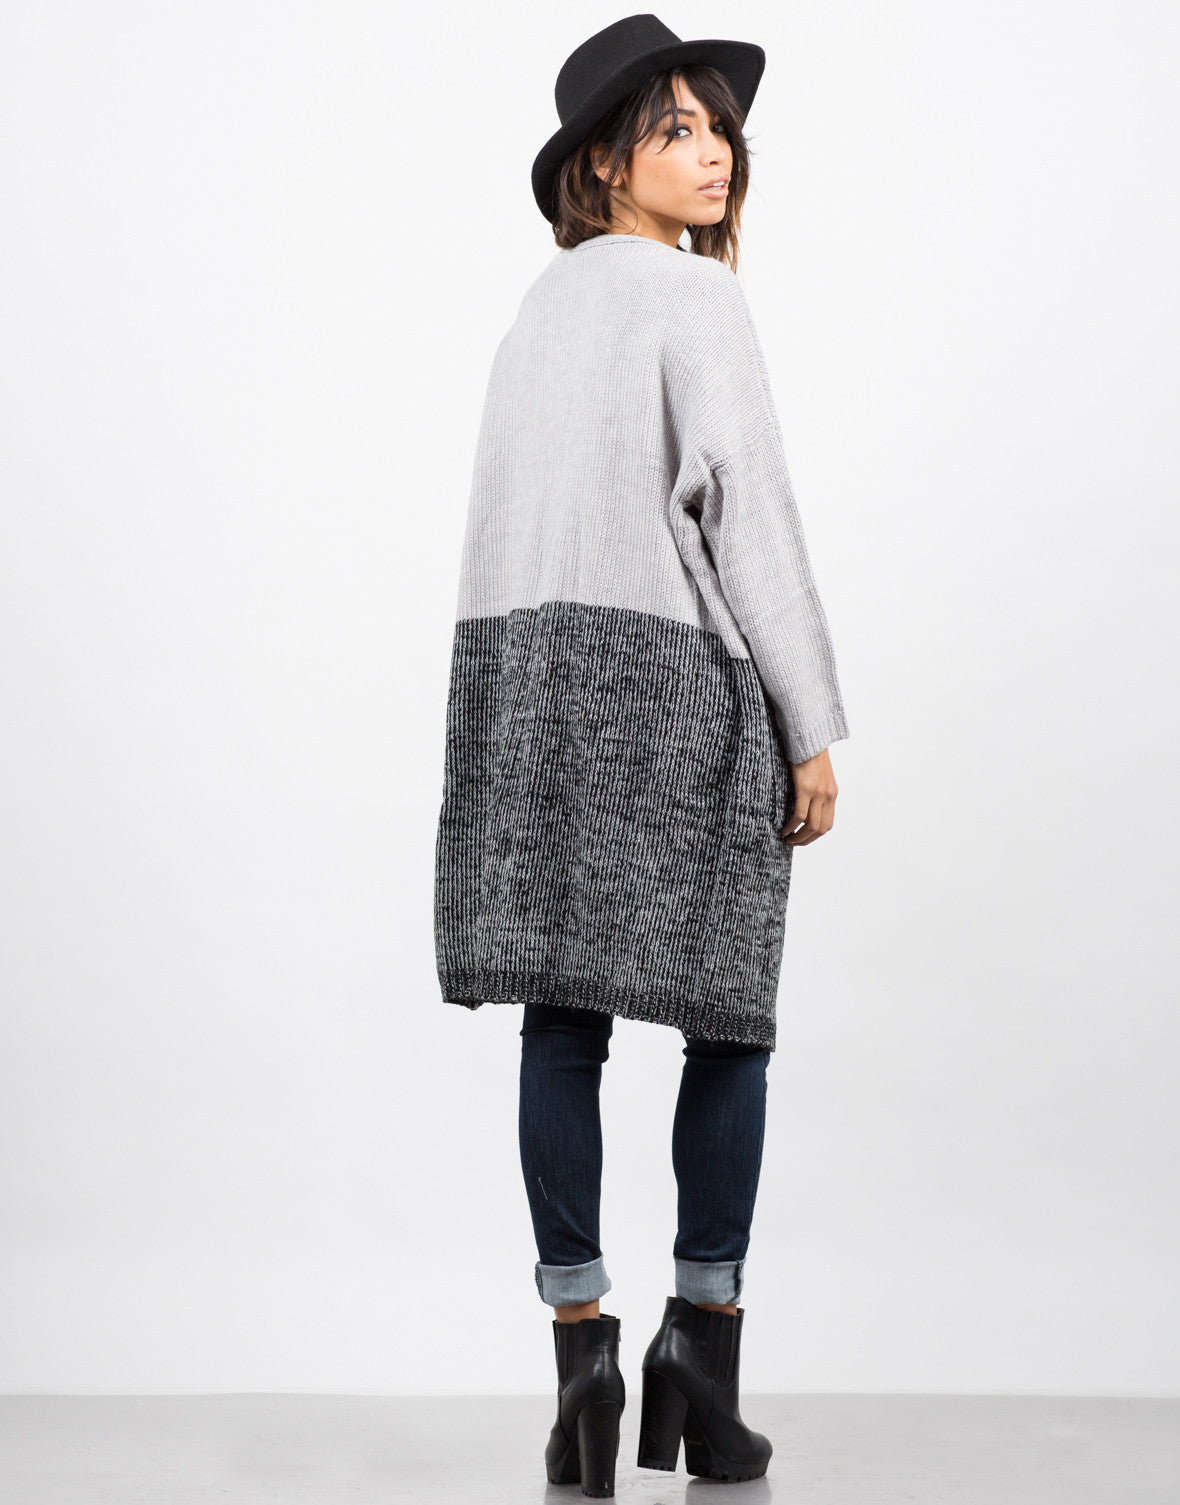 Back View of Half and Half Cardigan